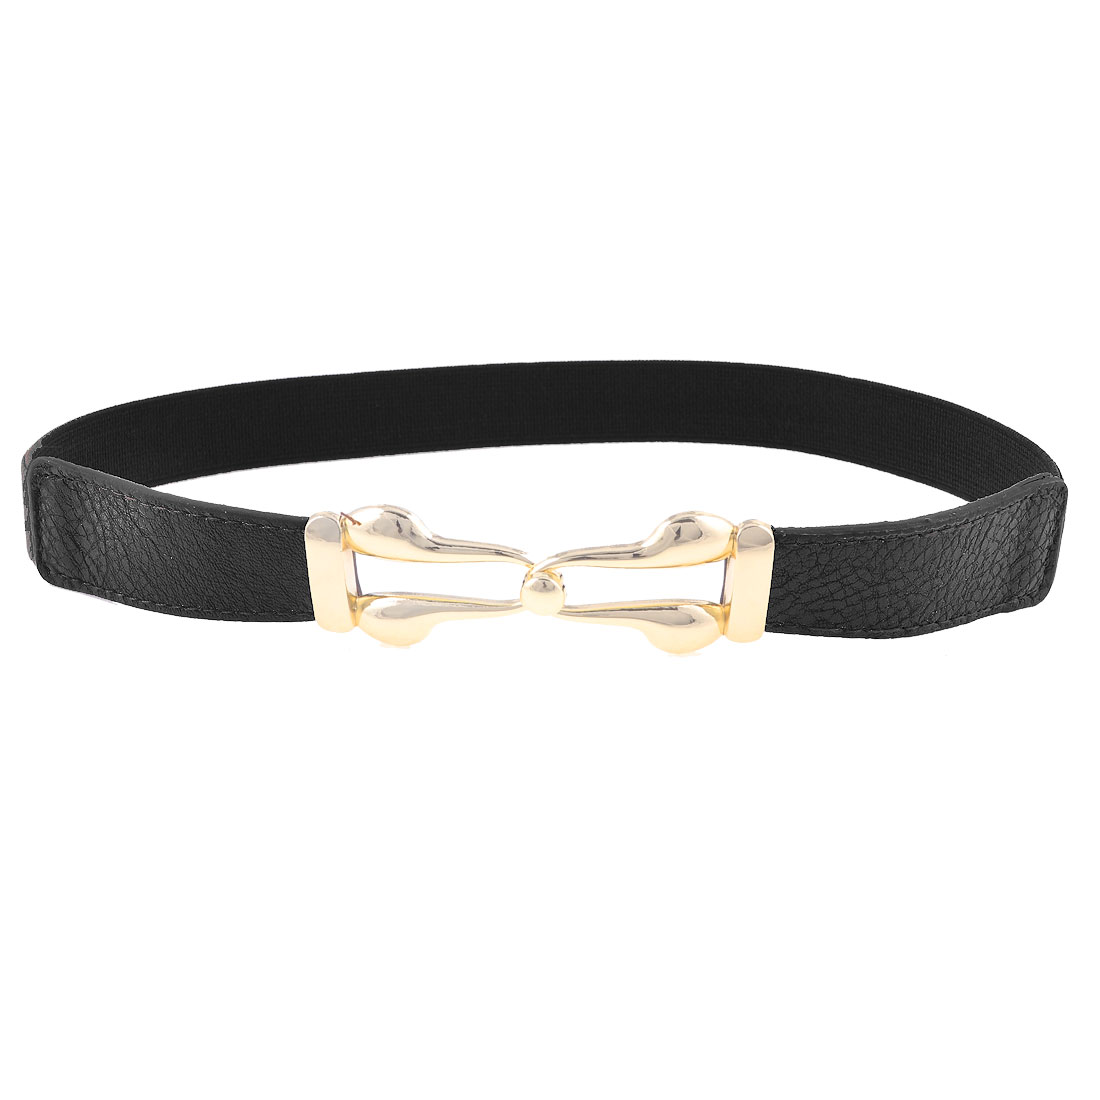 Lady Black Faux Leather Front Metal Interlocking Buckle Elastic Waist Belt